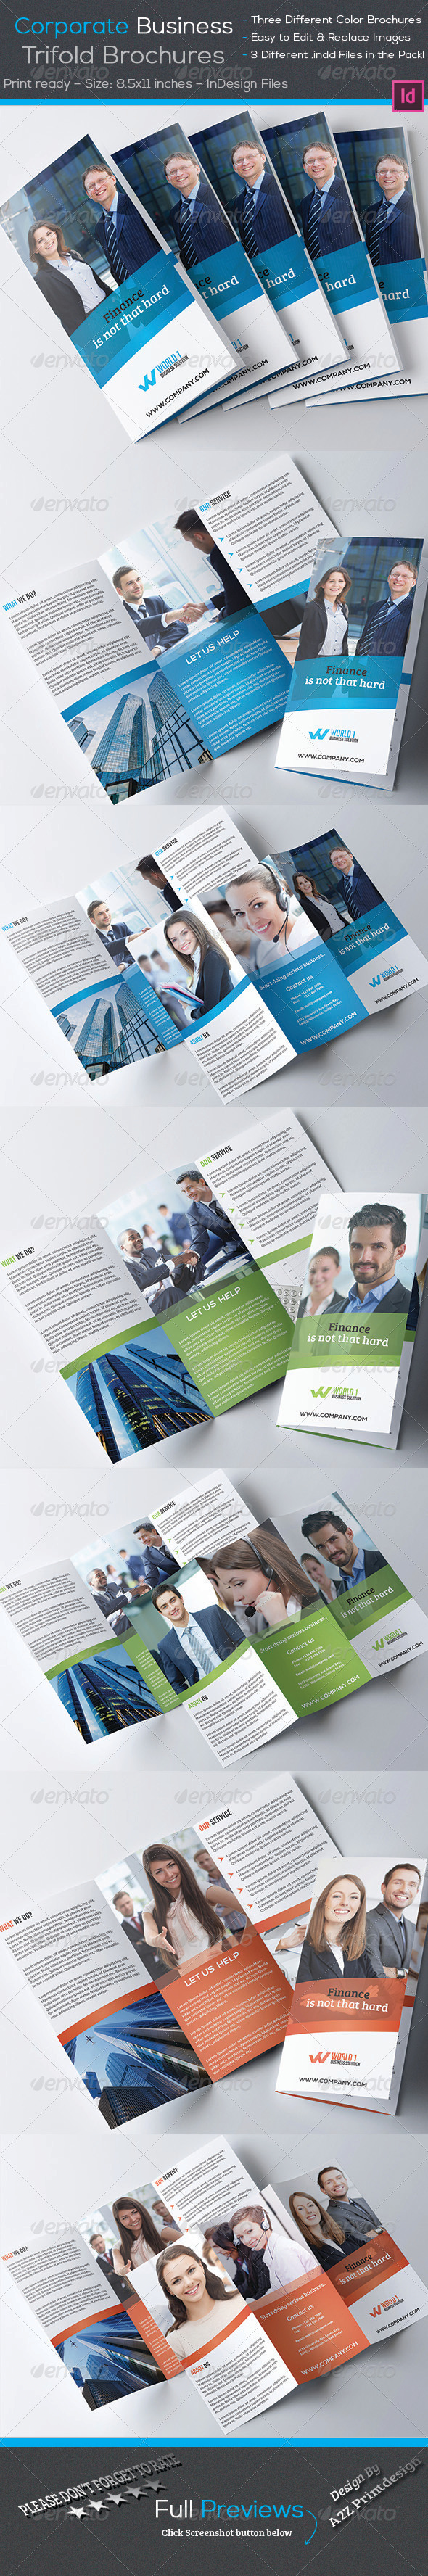 GraphicRiver Corporate Trifold Brochures 7901043